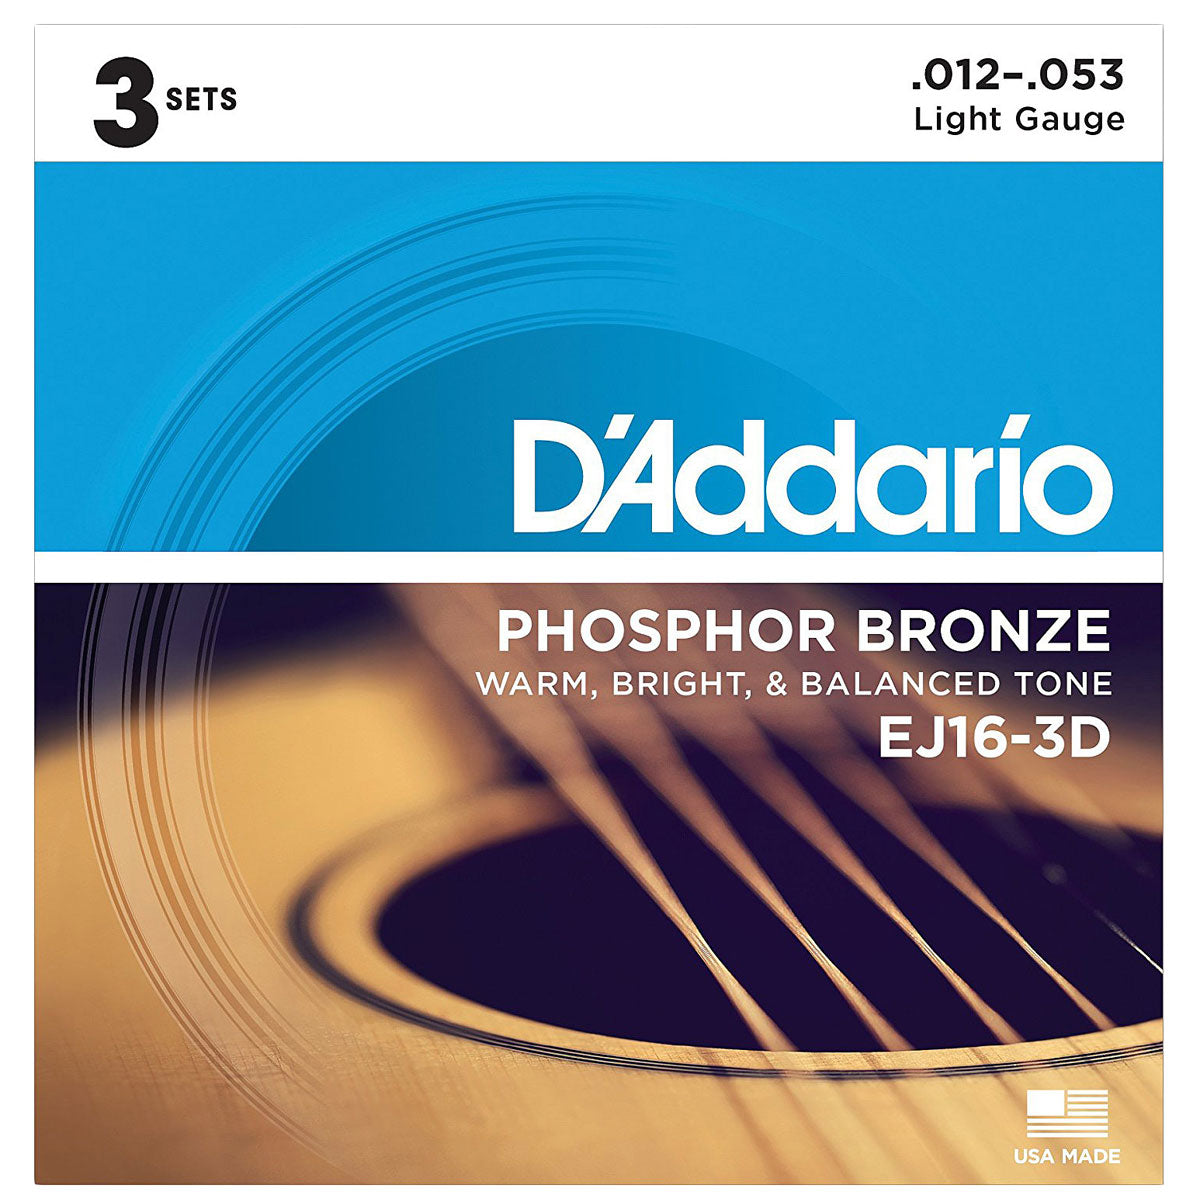 D'Addario - EJ16-3D Phosphor Bronze Light 12-53 - 3 Pack | Lucky Fret Music Co.